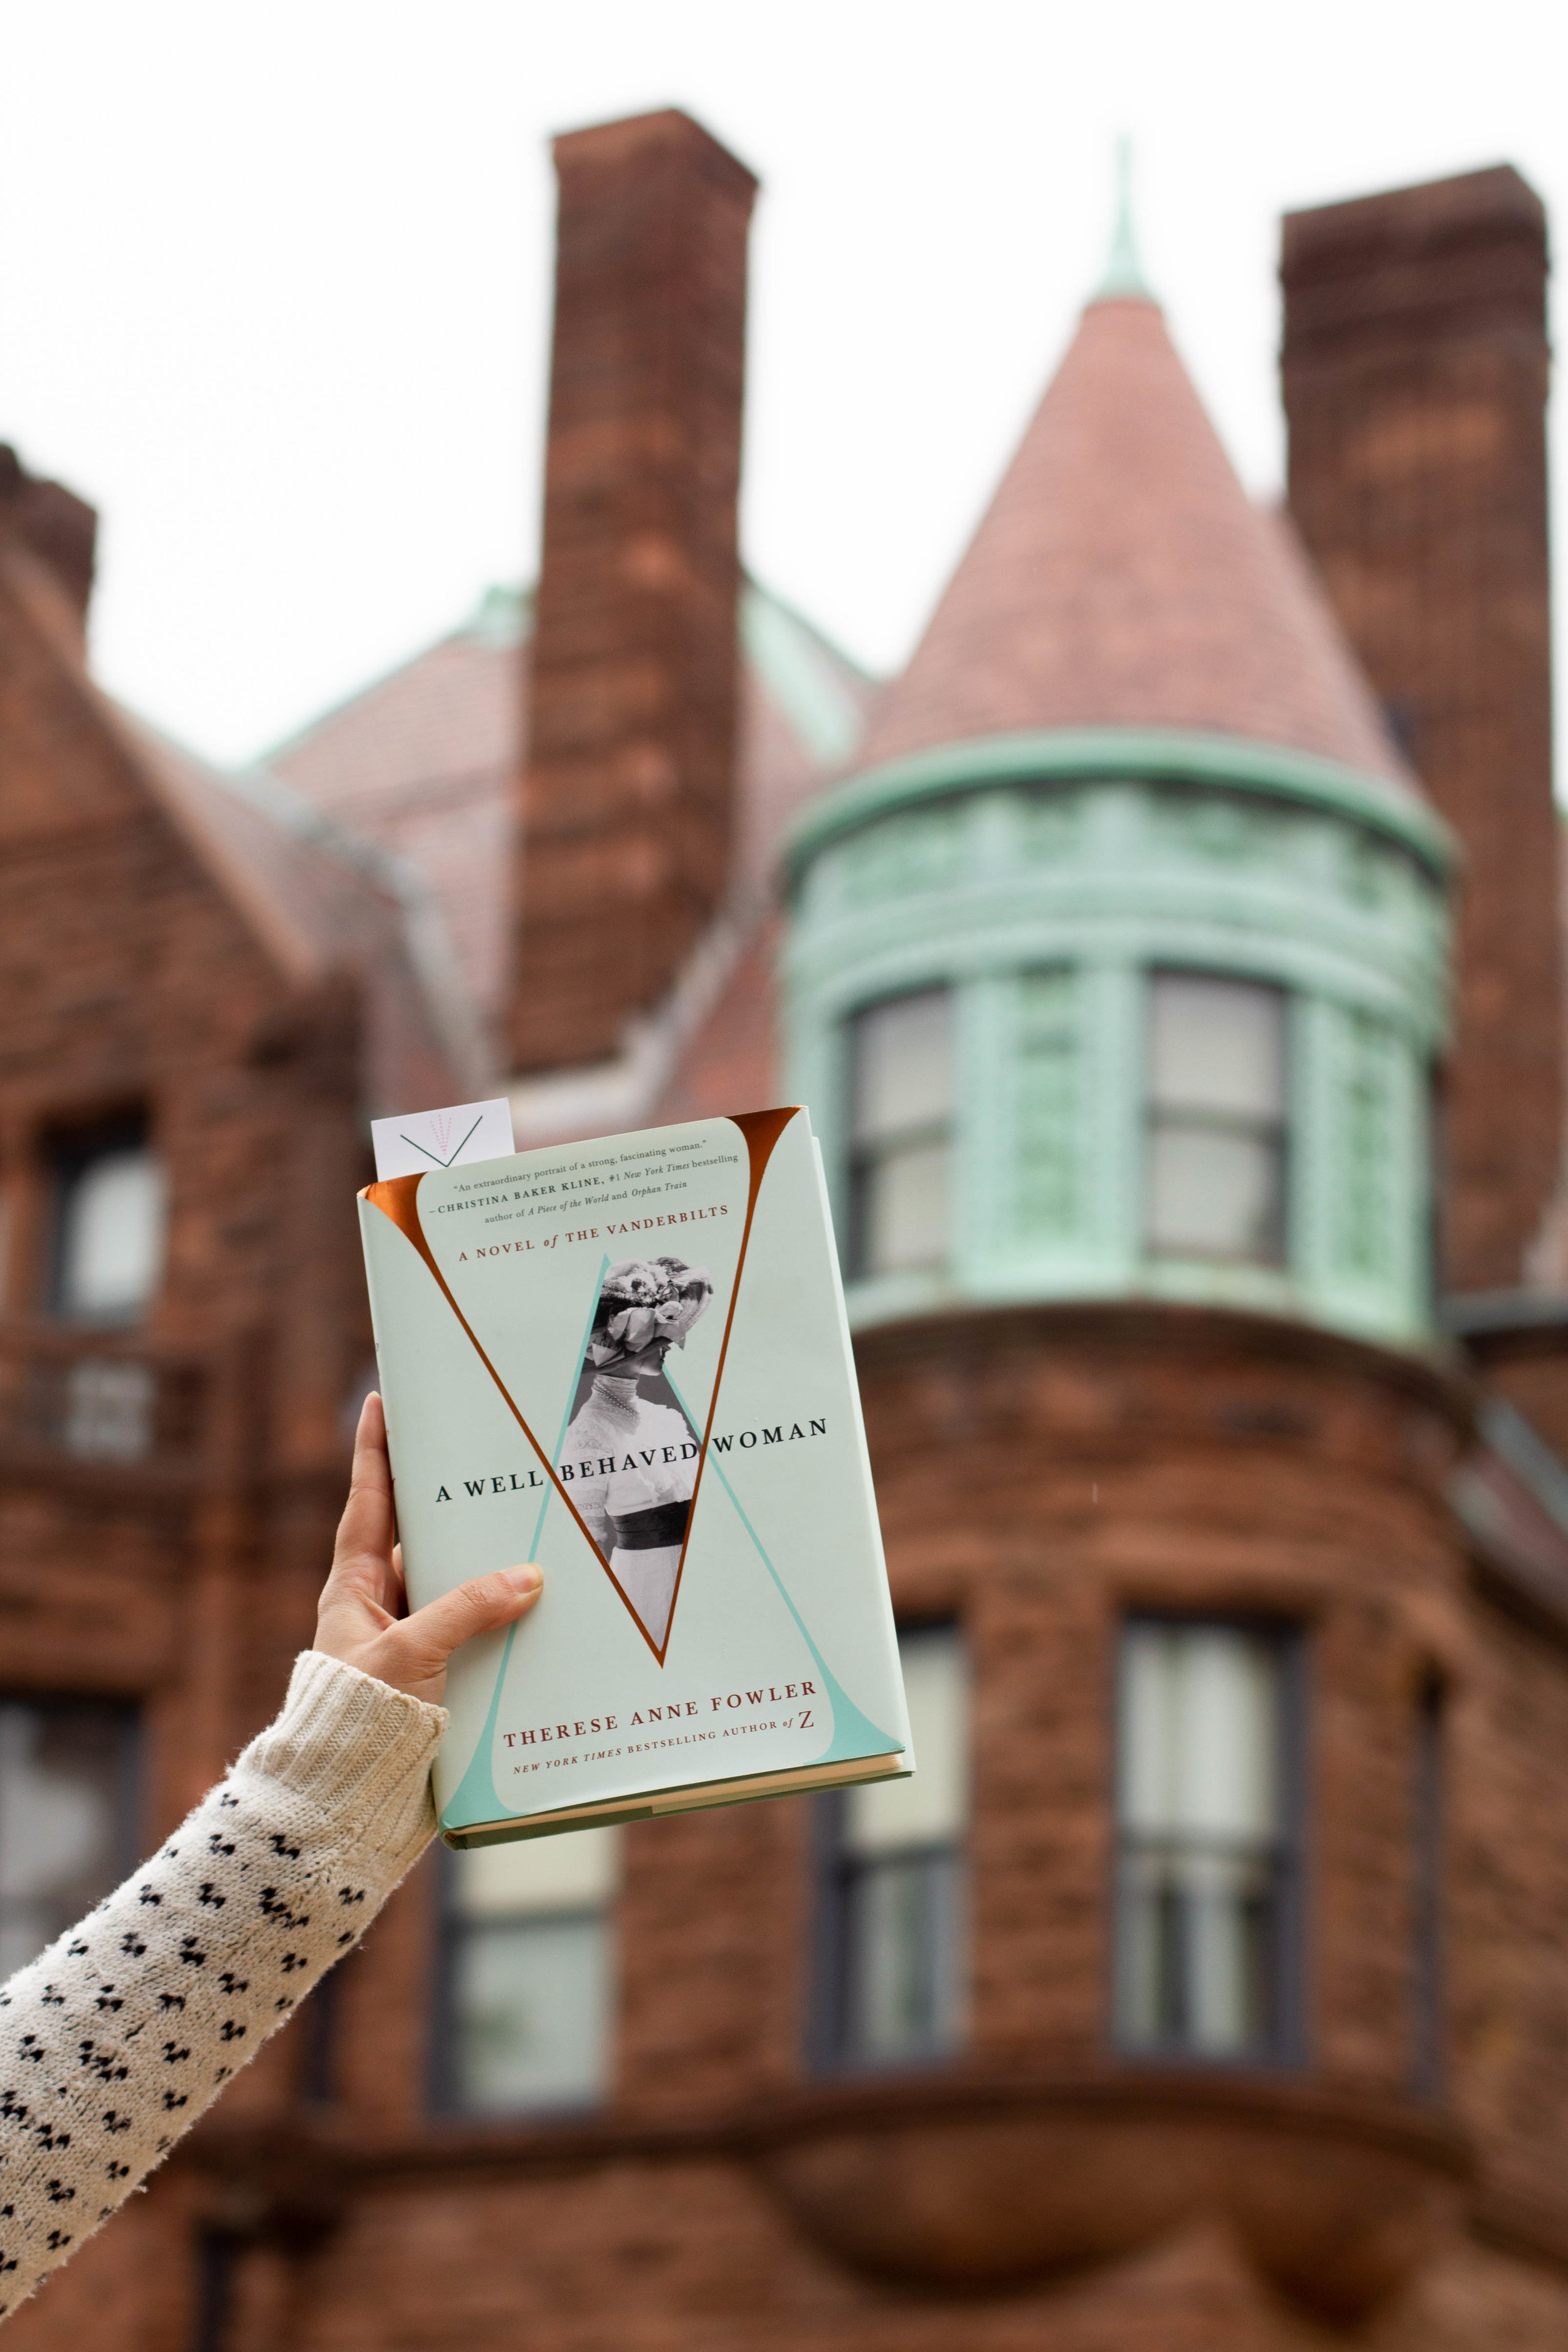 Reading A Well-Behaved Woman at the Samuel Cupples House on the St. Louis University Campus